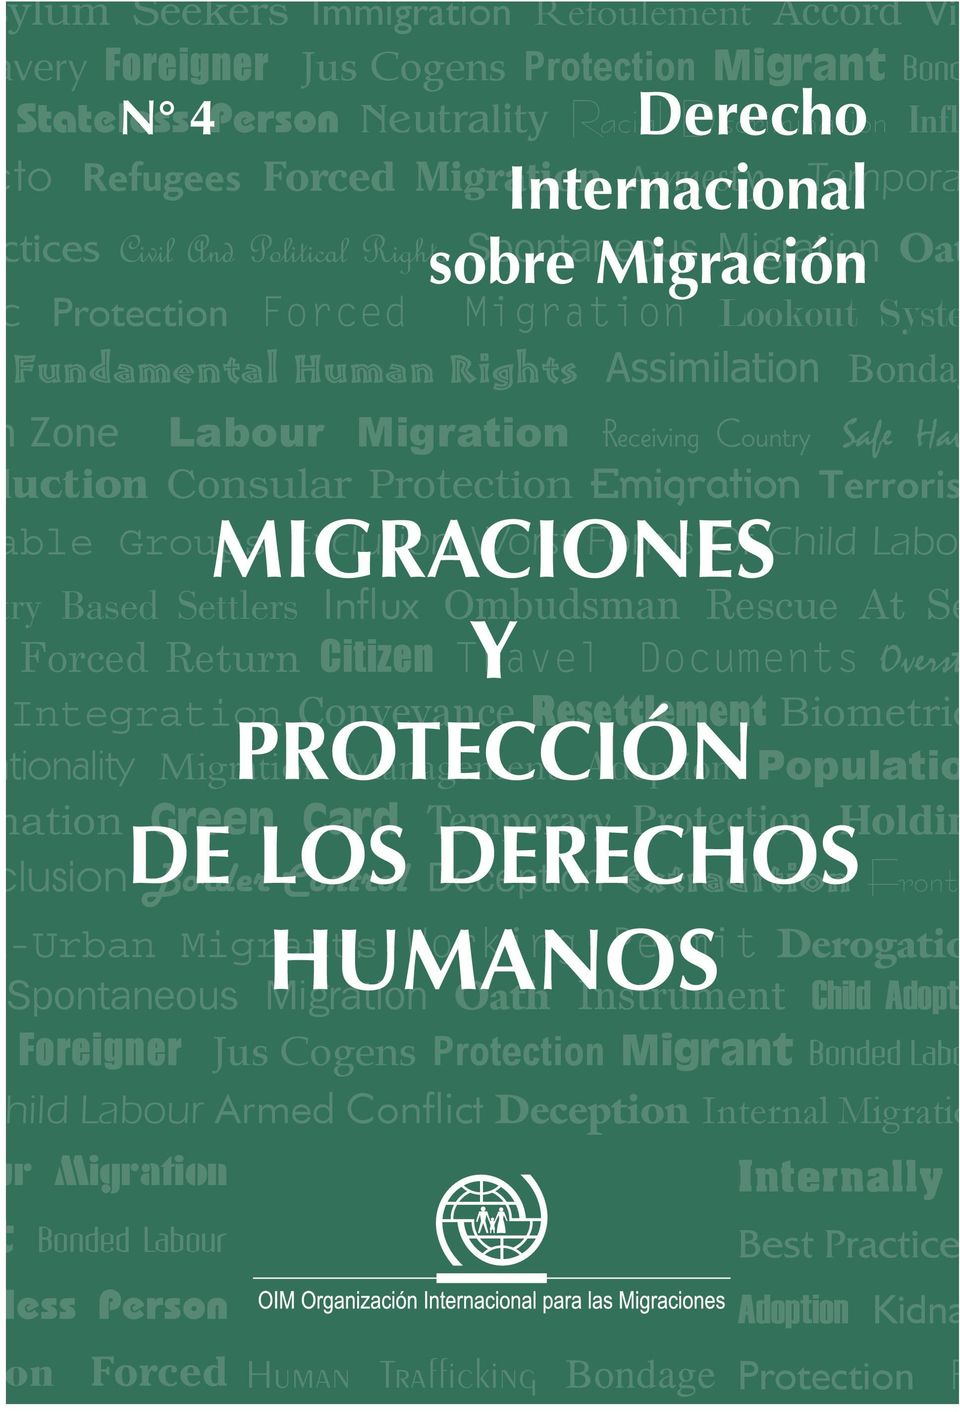 Labour Migration Receiving Country Safe Hav uction Consular Protection Emigration Terroris ble Groups Exclusion Worst Forms Of Child Labo MIGRACIONES ry Based Settlers Influx Ombudsman Rescue At Se